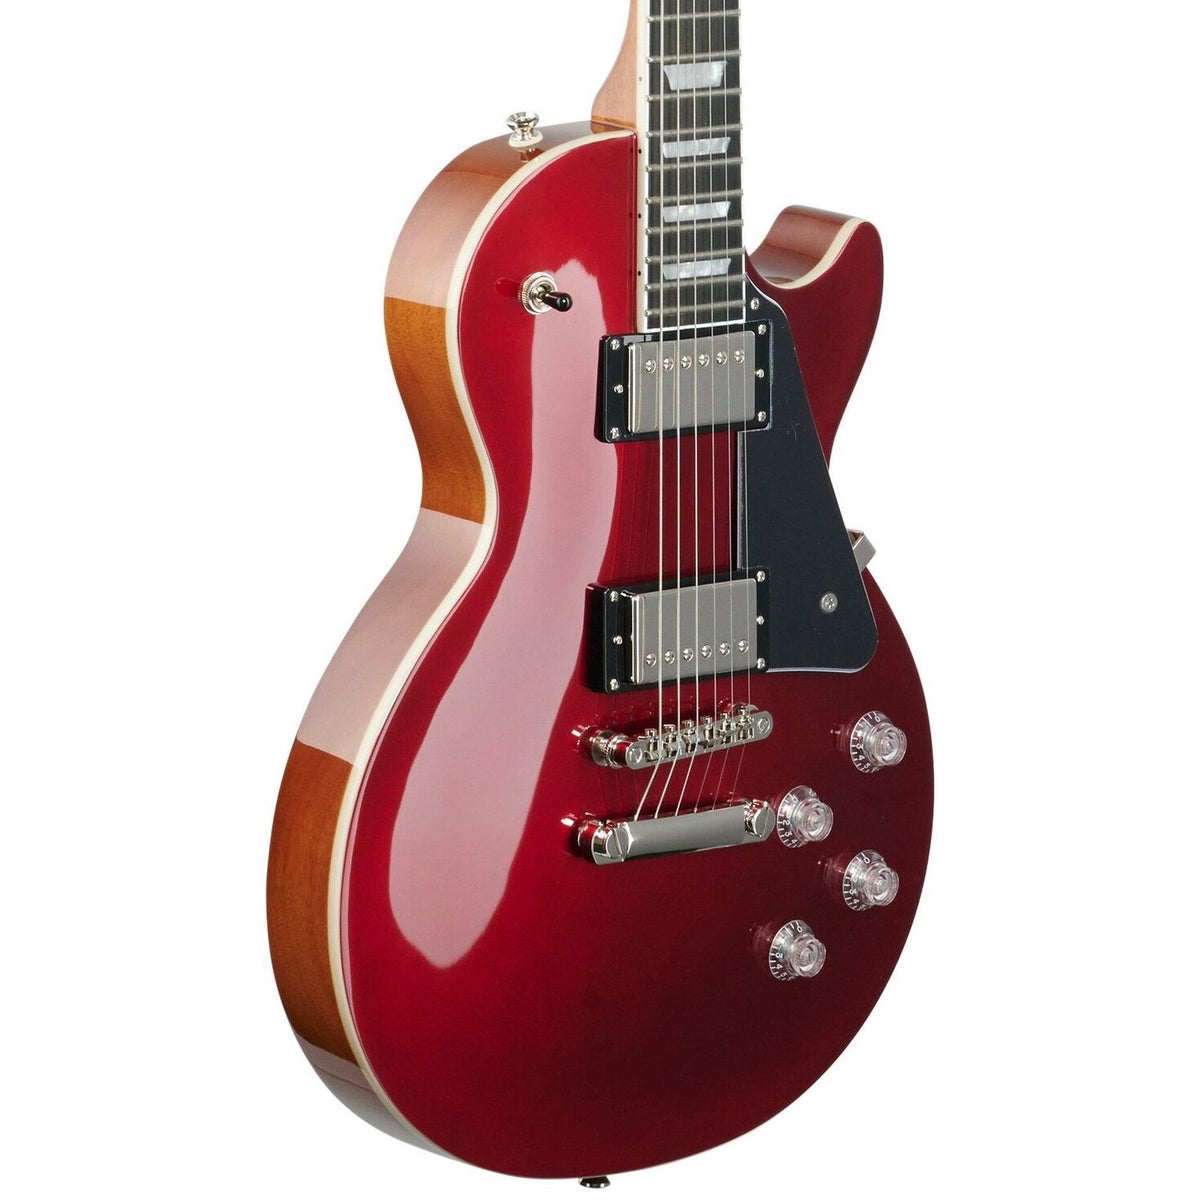 Epiphone Les Paul Modern Electric Guitar, Sparkling Burgundy